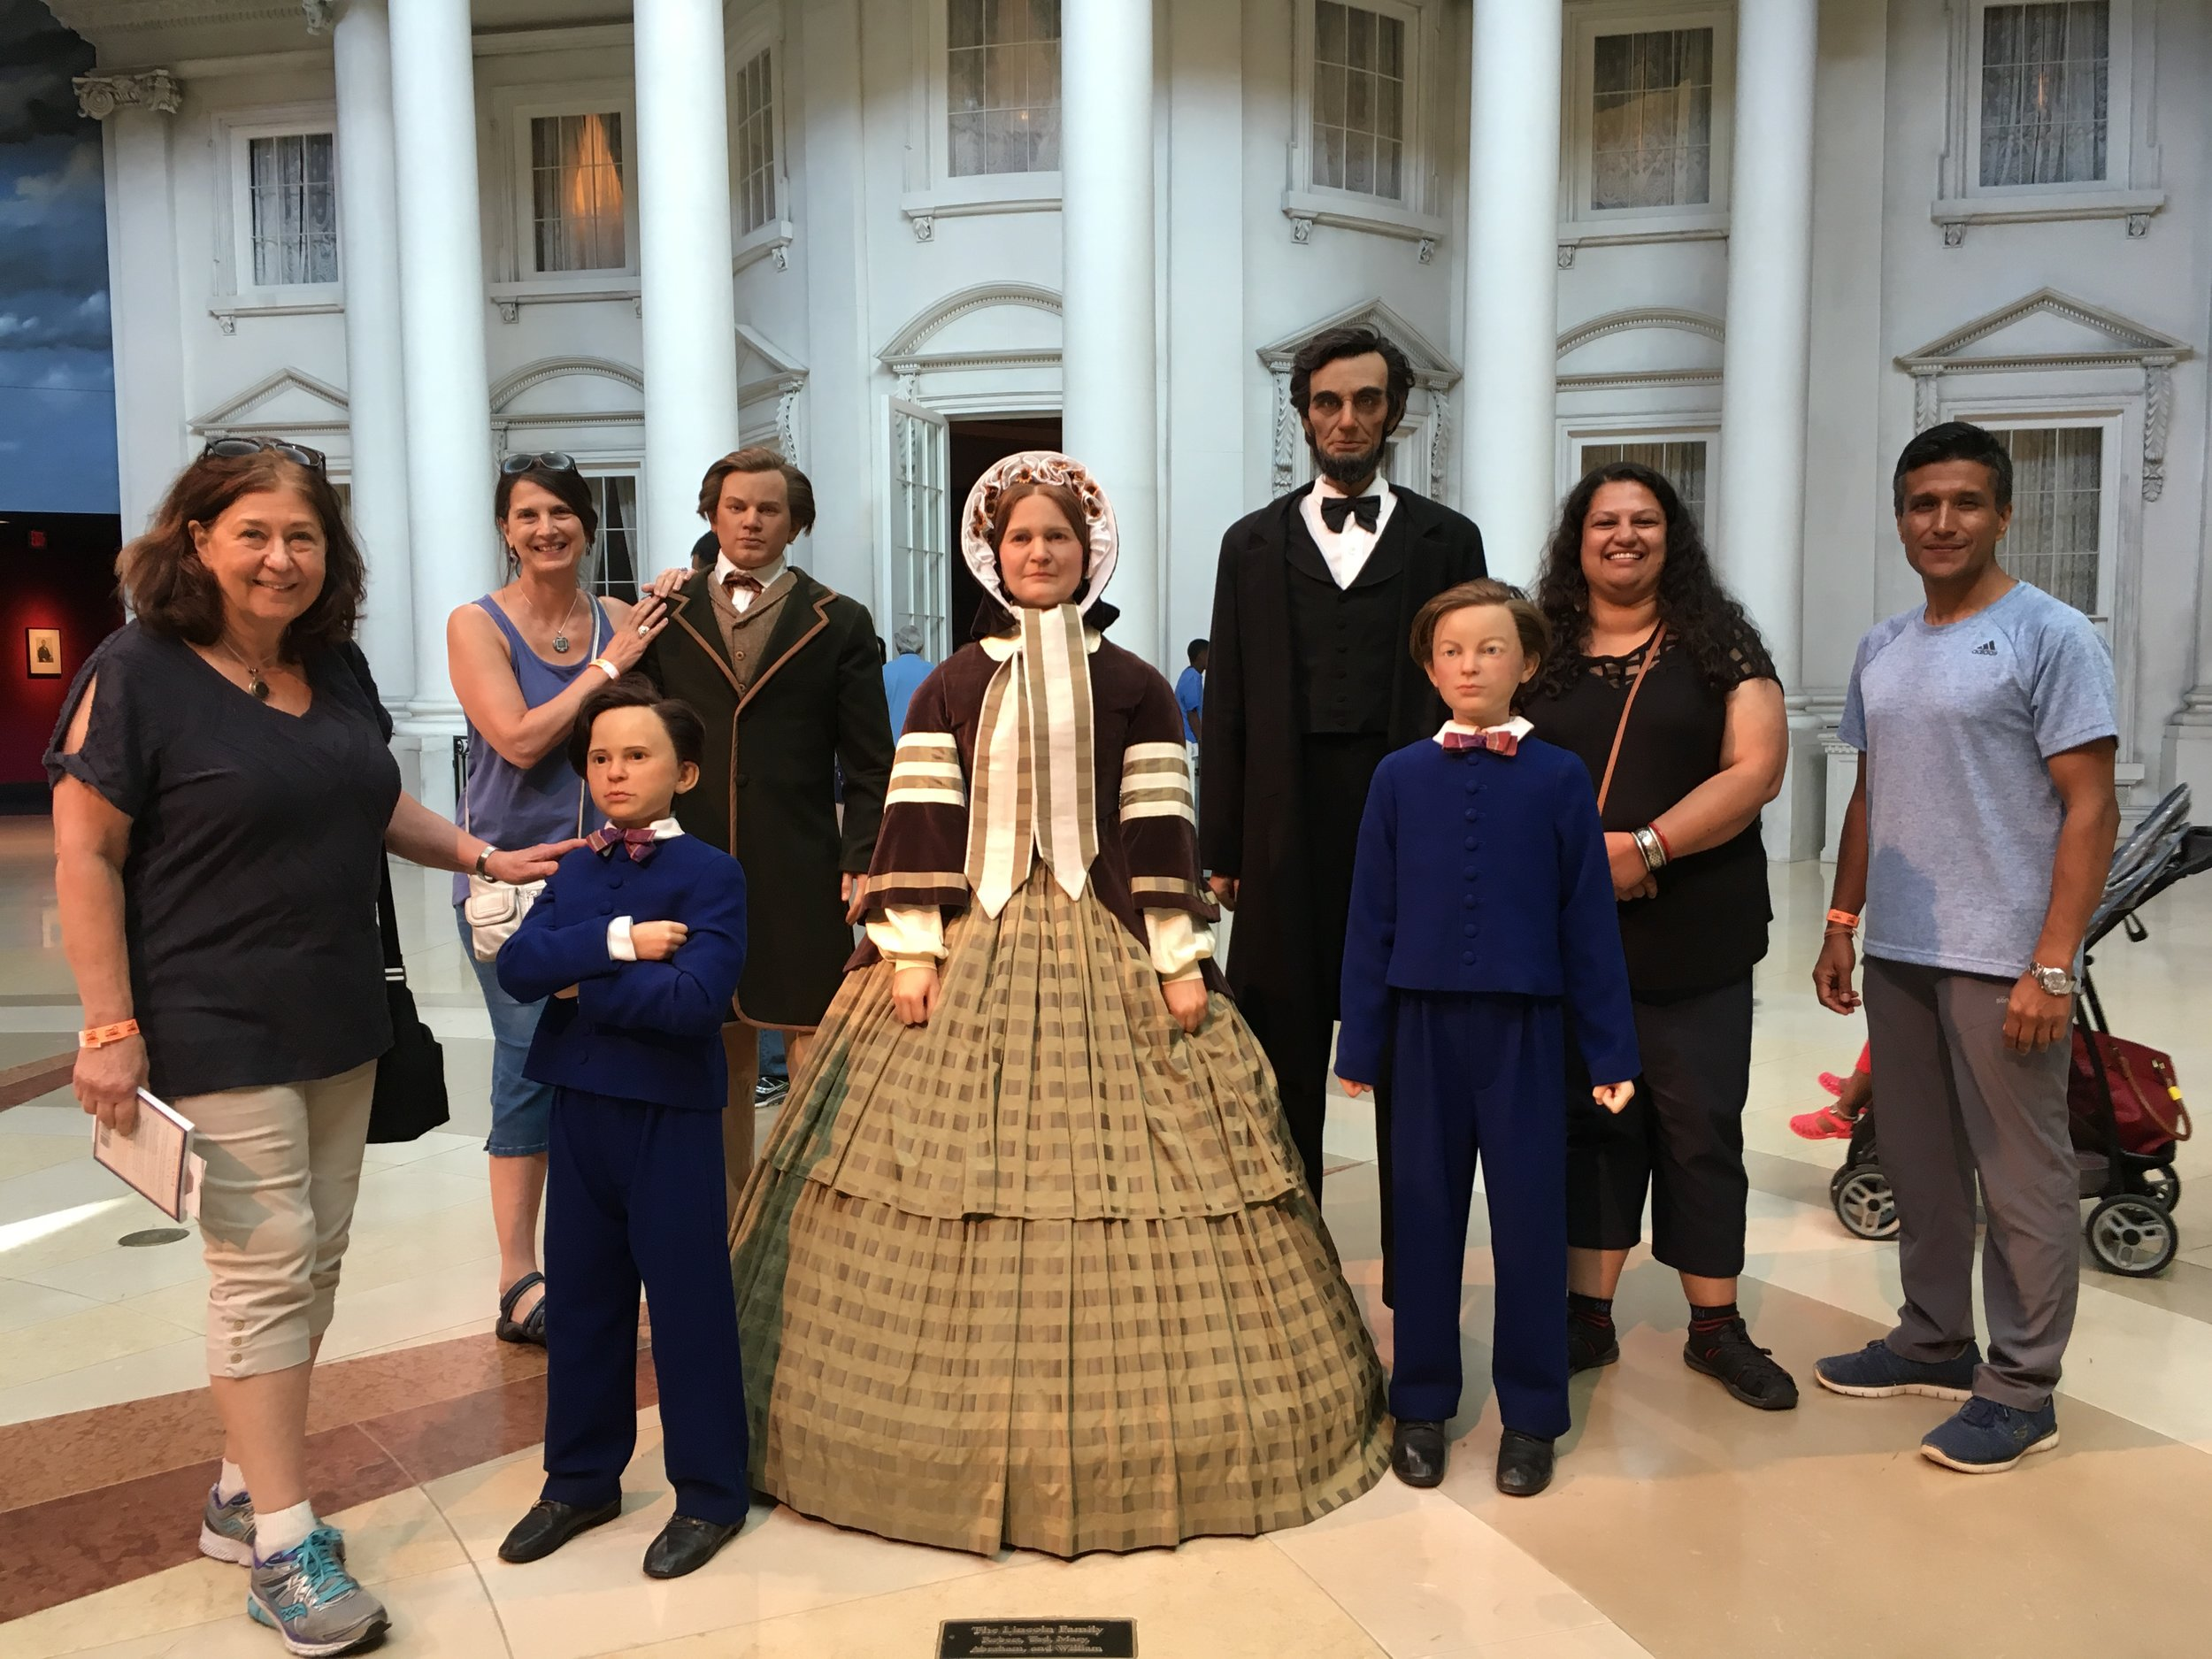 Nancy, Christine, Leena and Yogesh with Lincoln and his family on a sidetrip to Springfield Il.